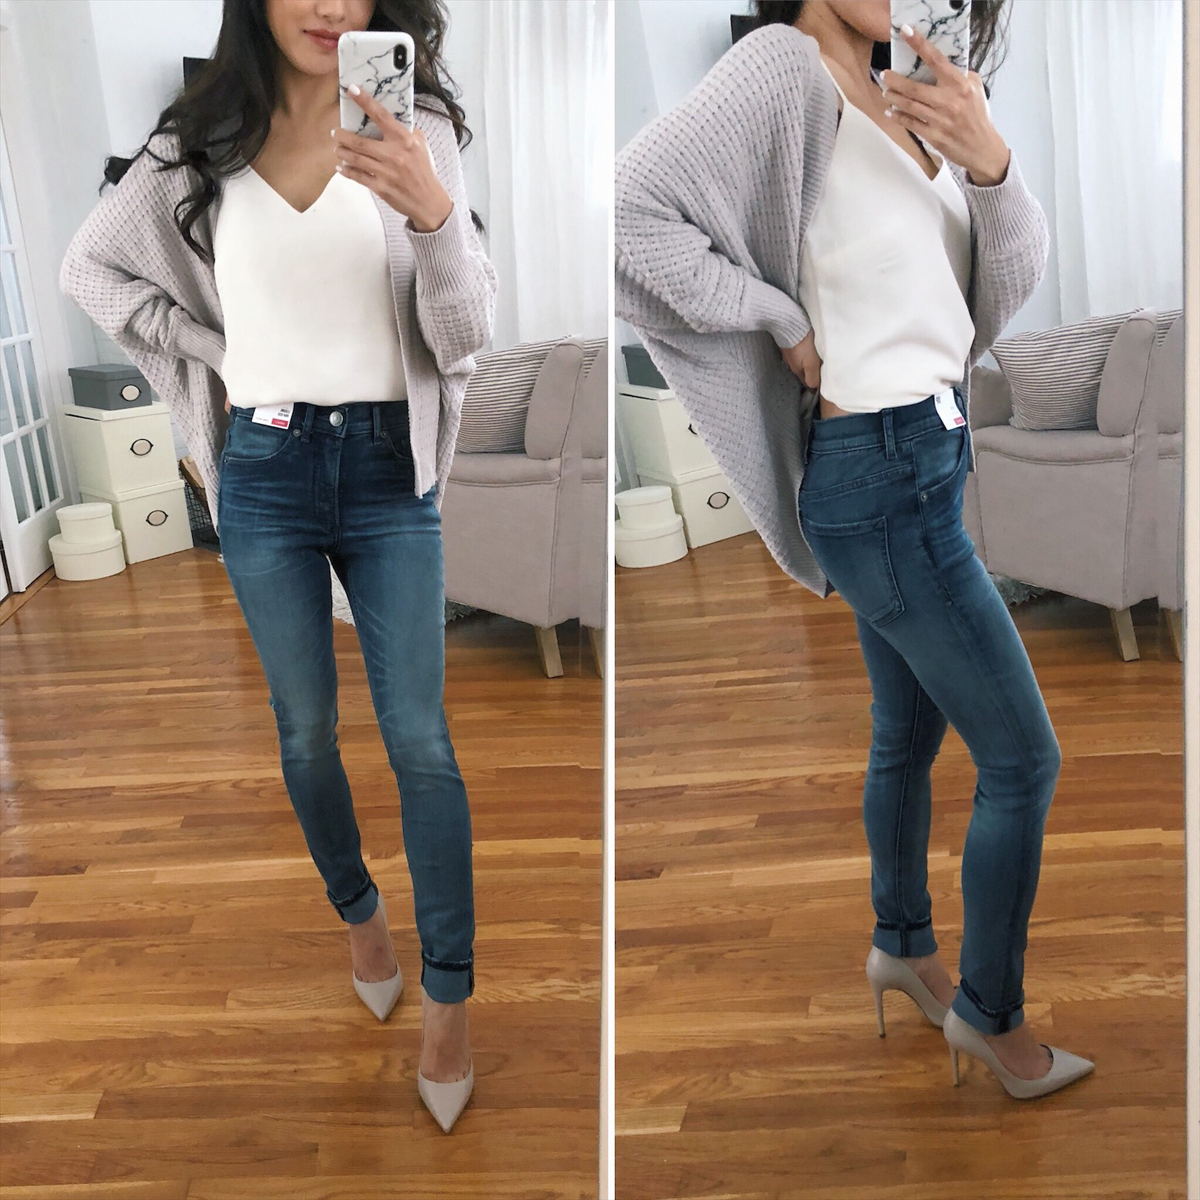 express skinny jeans for petite women review